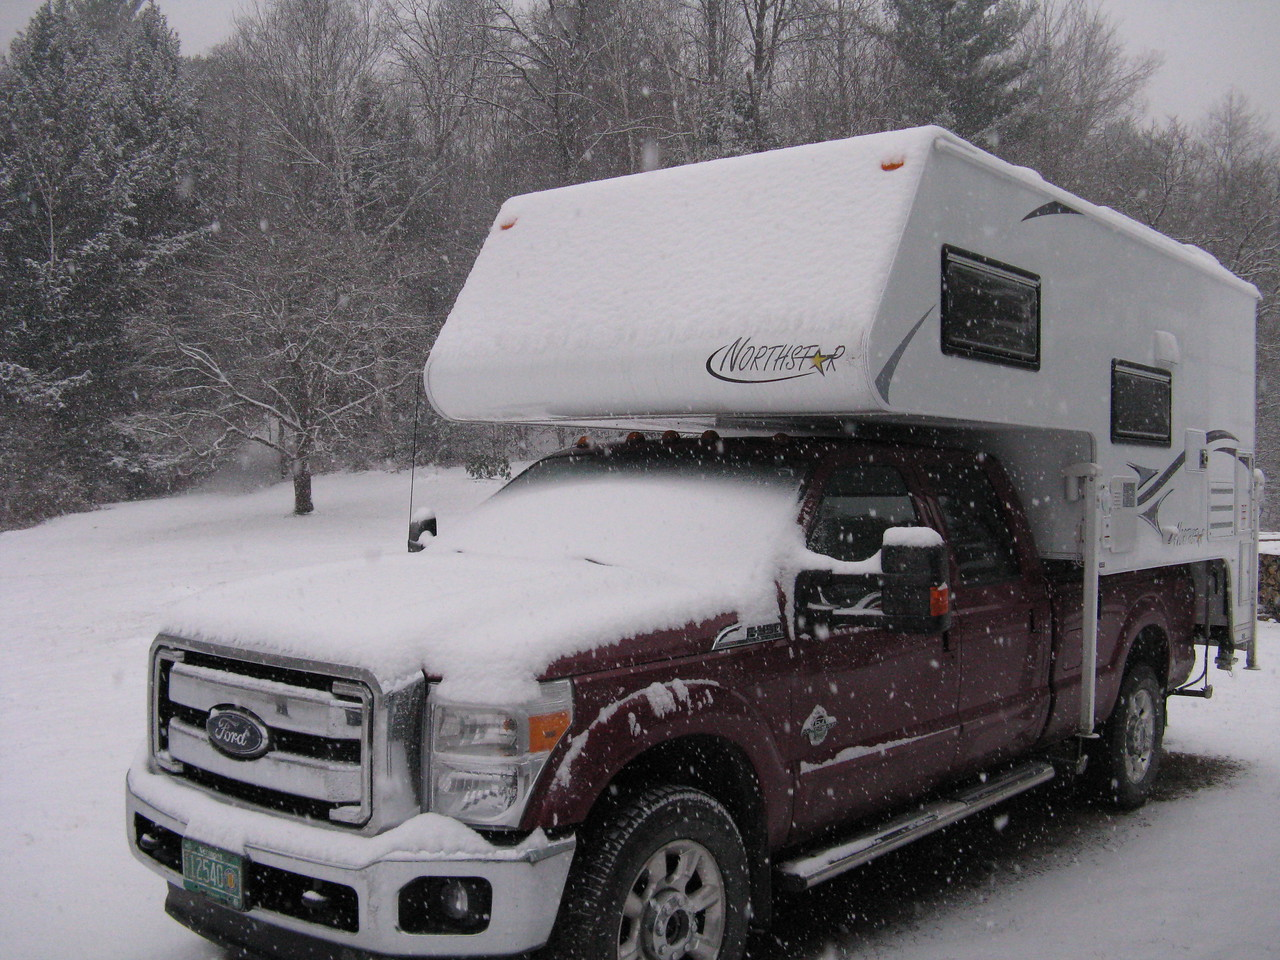 December 5, 2016. Time to start thinking about camping - someplace warmer.